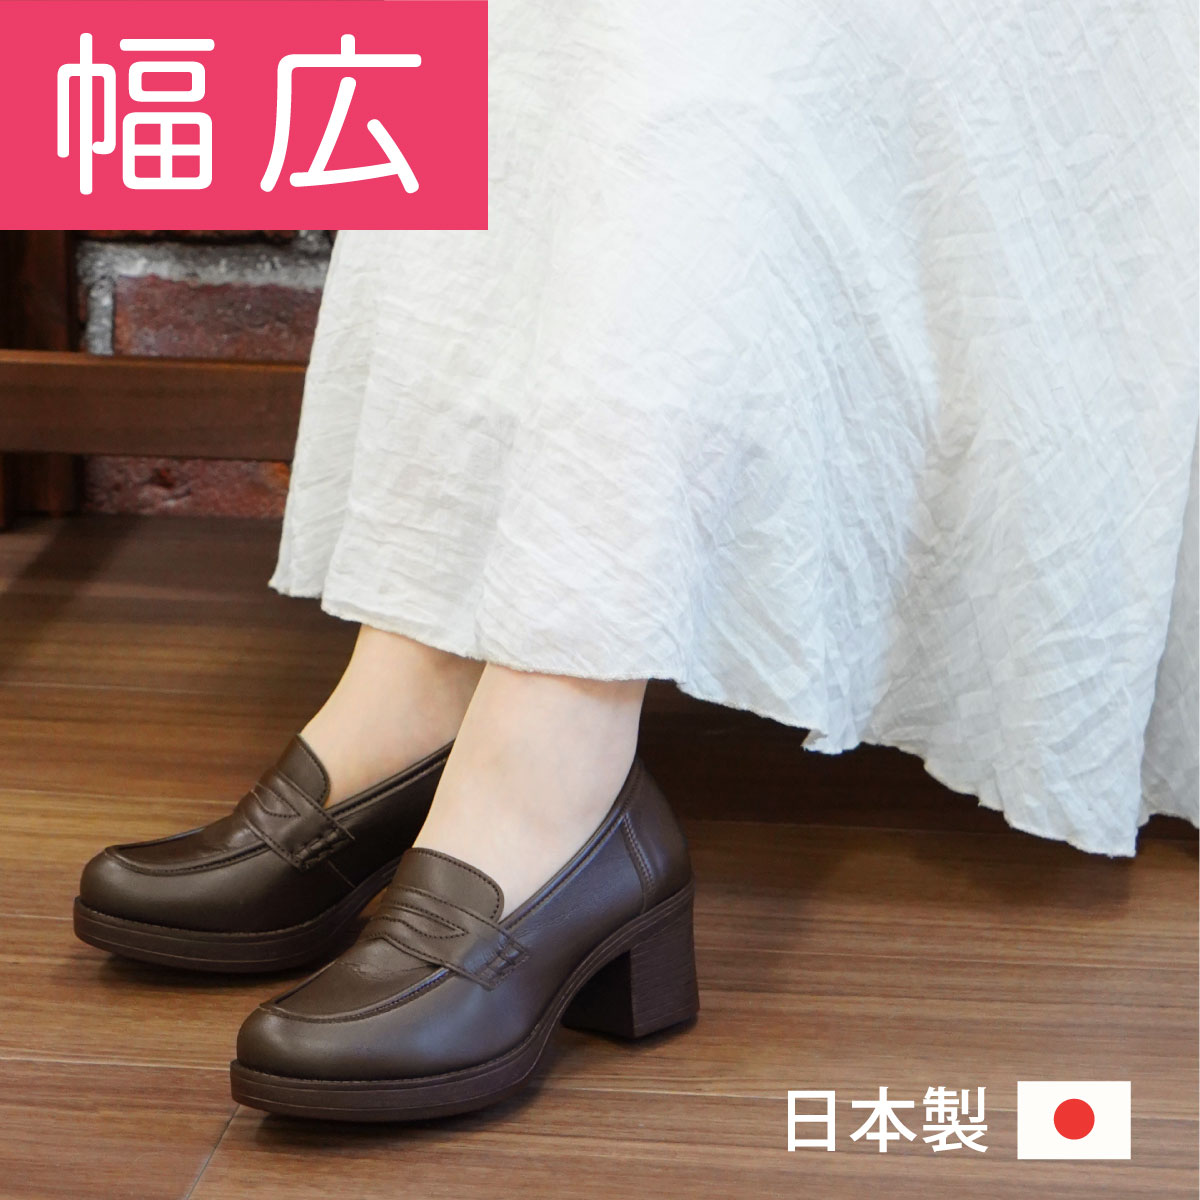 Yasashii kutsukoubou Belle and Sofa | Rakuten Global Market: Software material ★ A3307W bell original to have blisters on the heels in neither a thick-soled penny loafers student nor traditional fashion-style